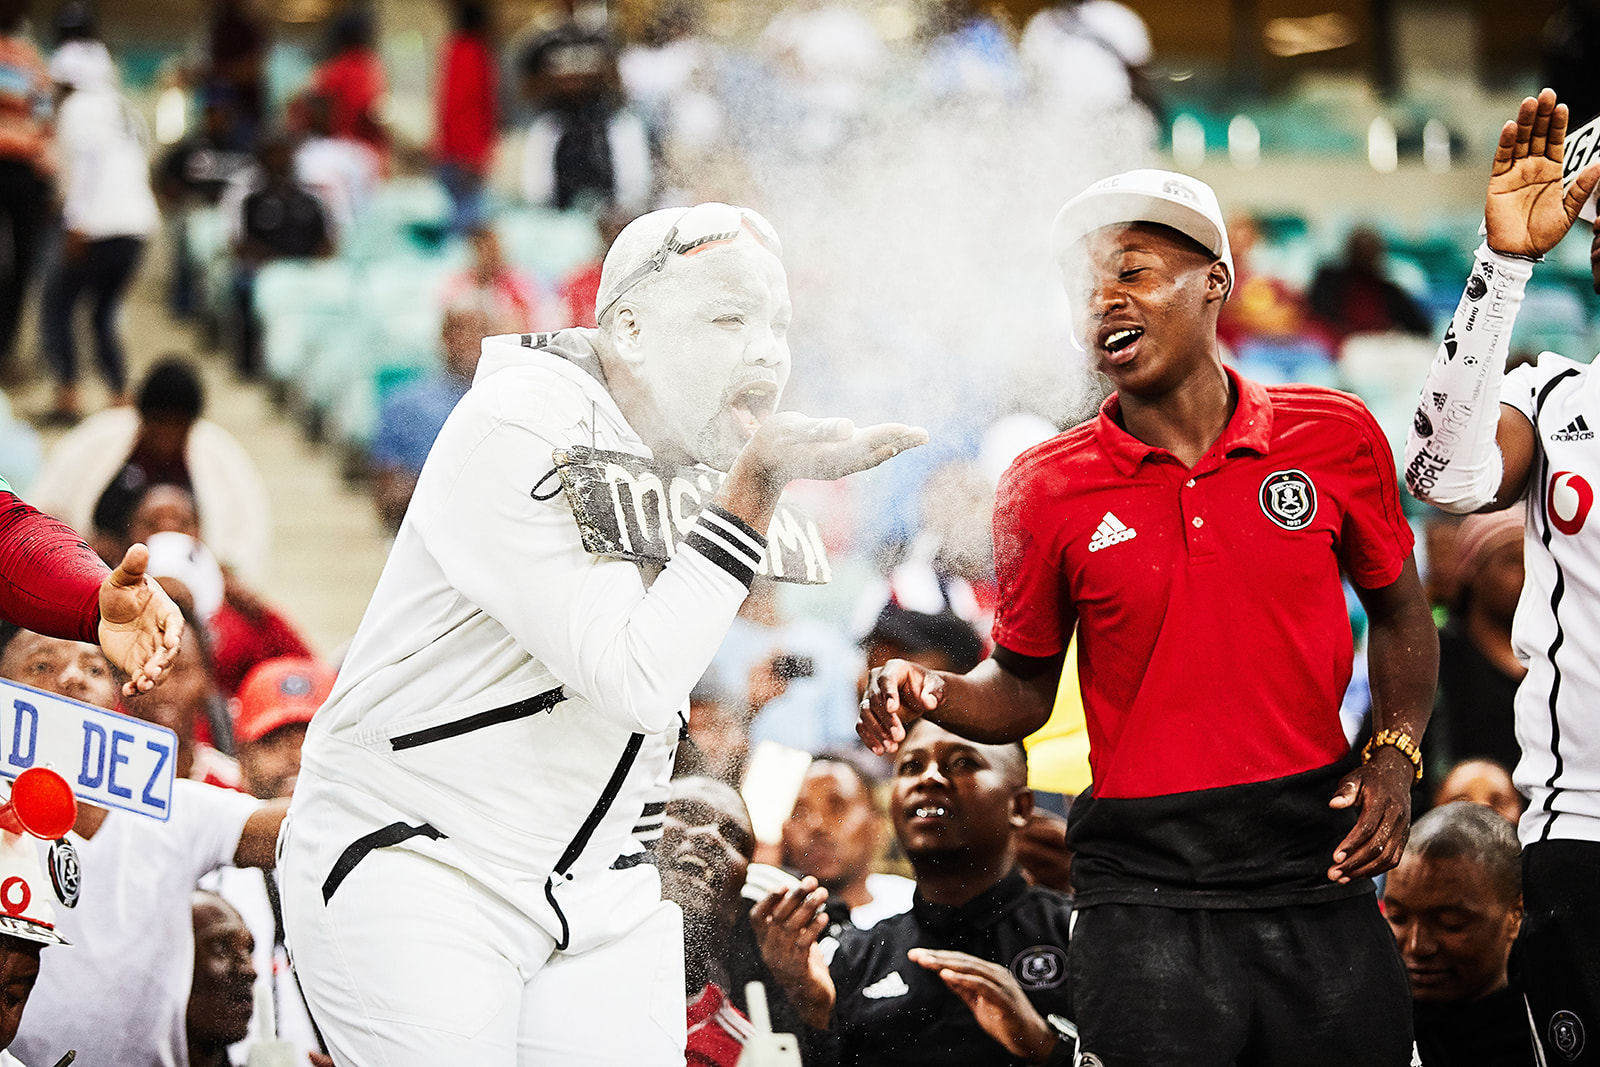 Wits VS Pirates